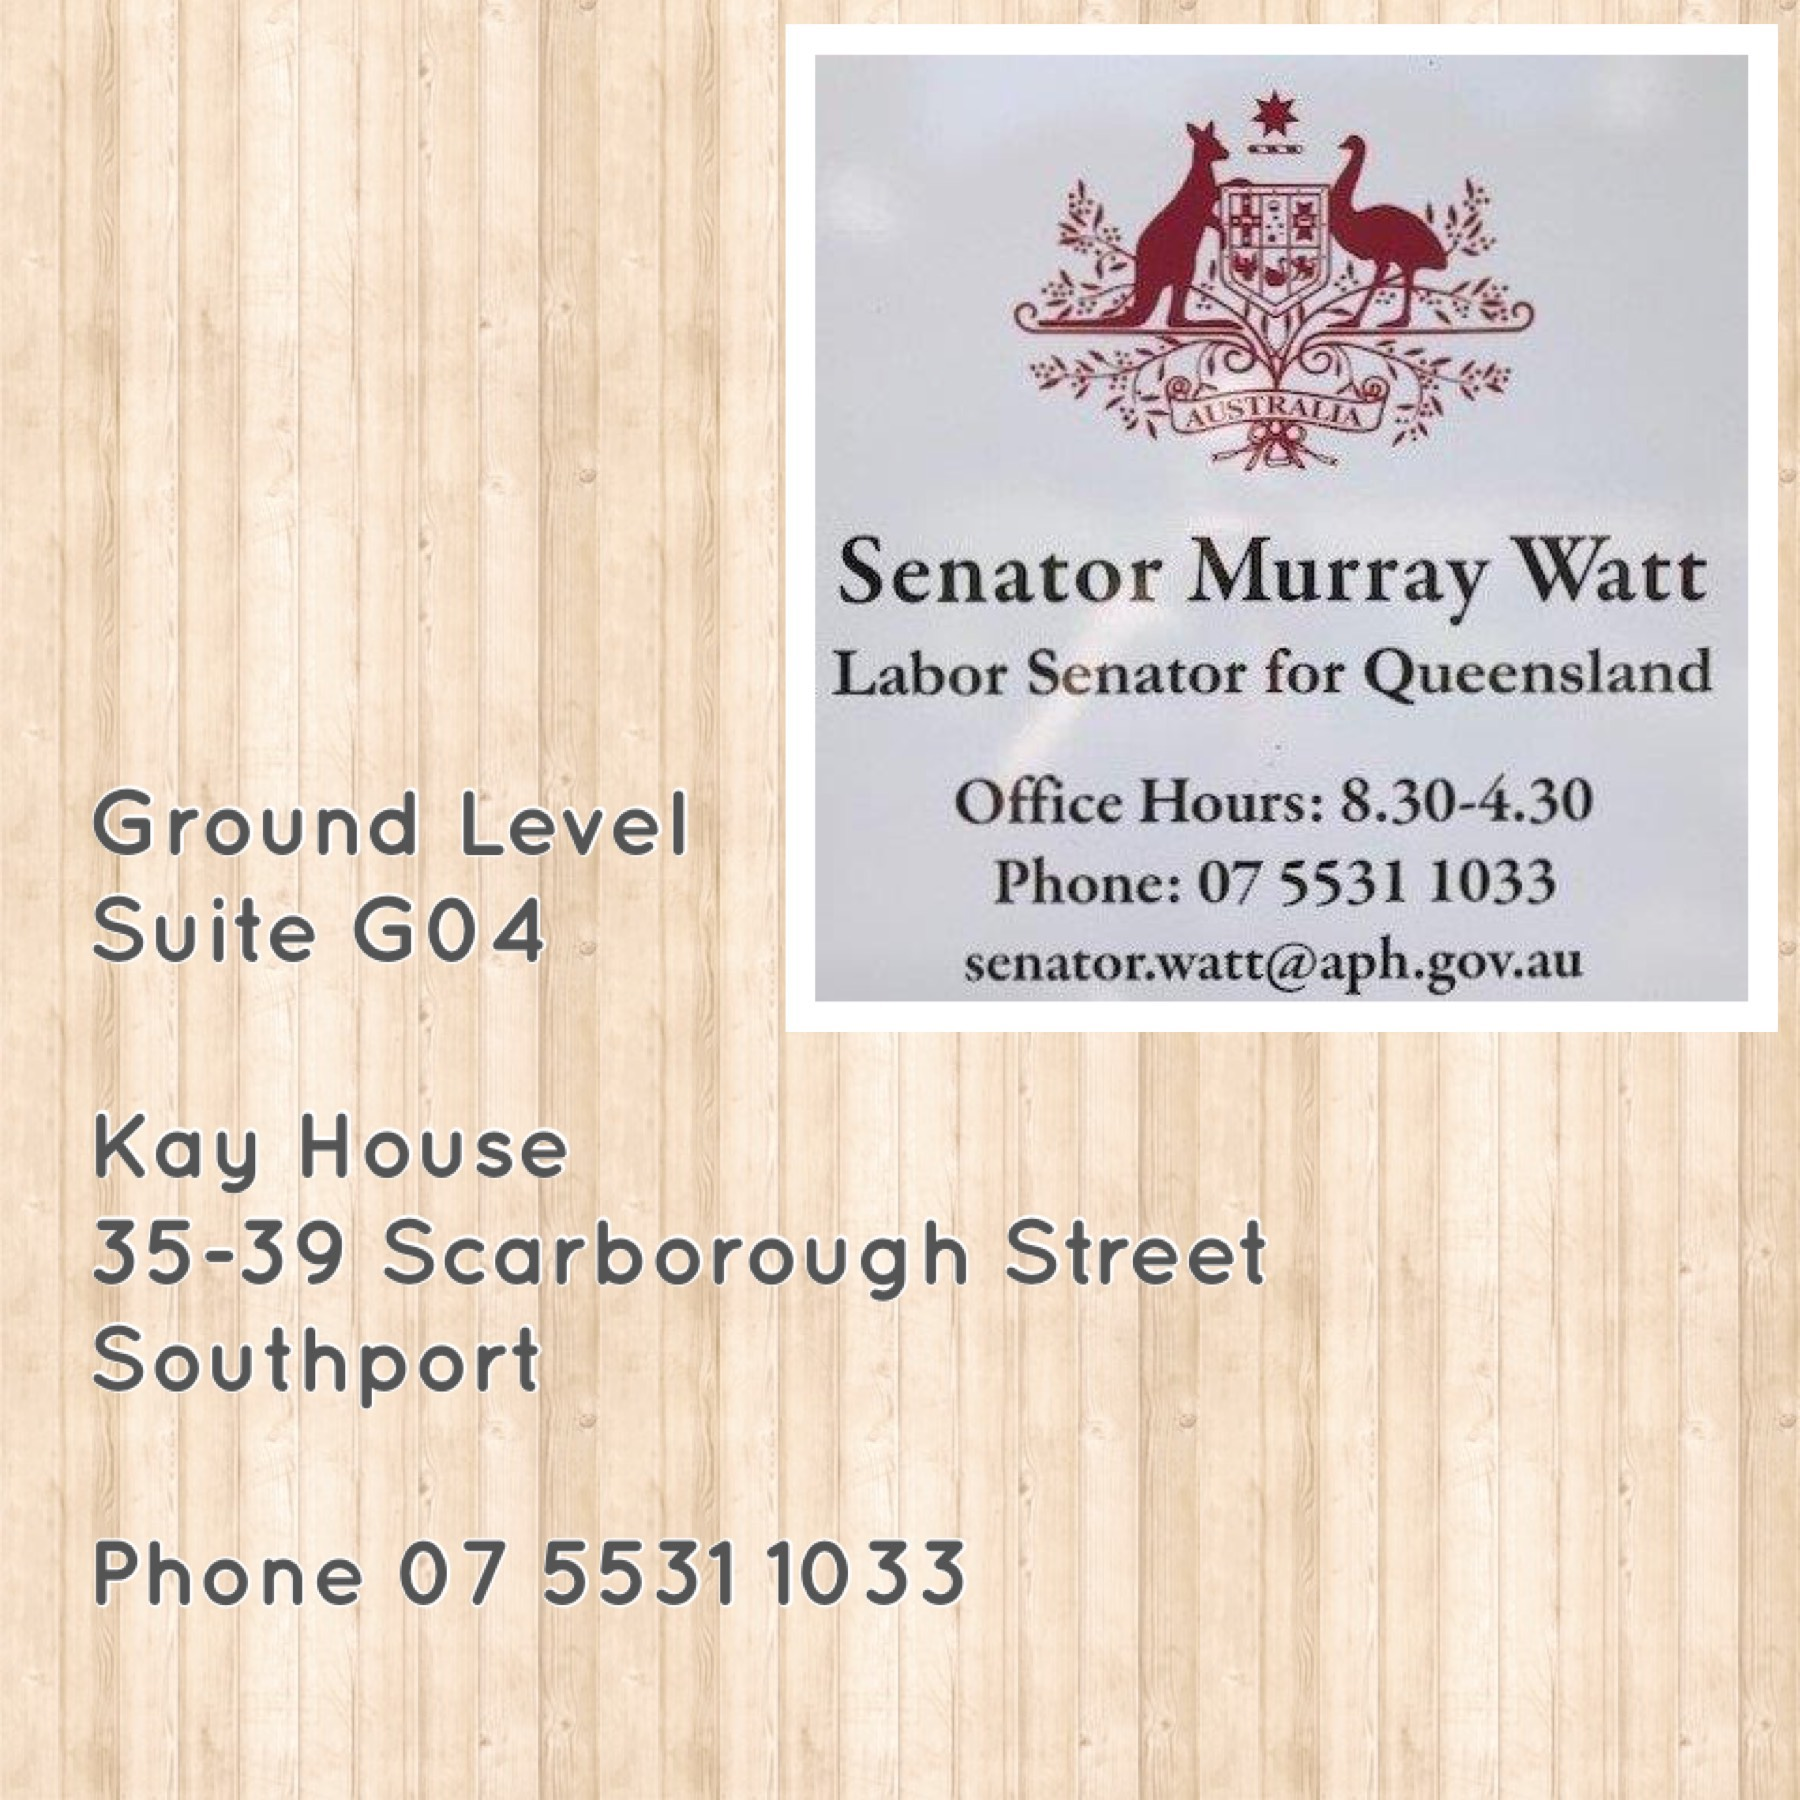 Kay House: Suite 04 Ground Floor Sen Watt